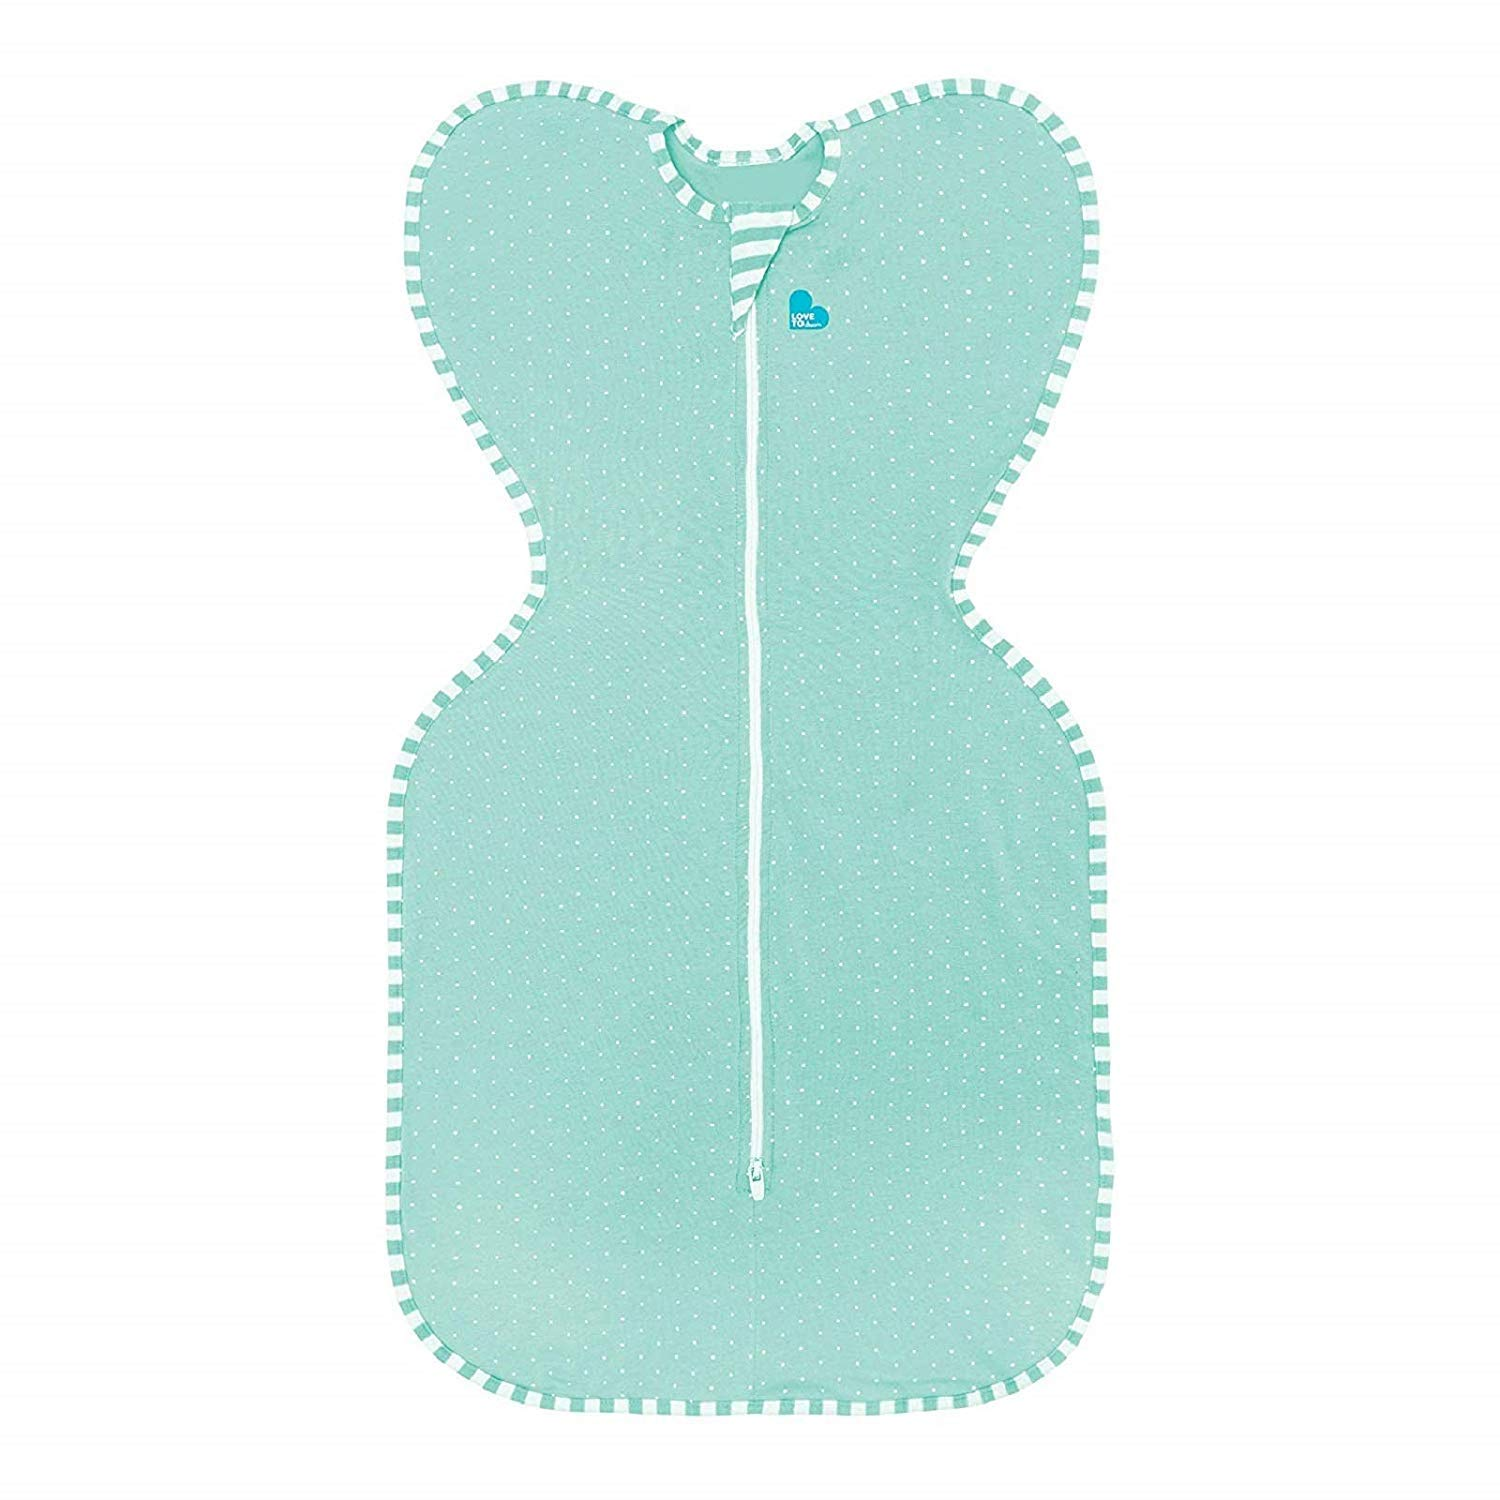 Love To Dream Swaddle UP Lite, Ice Green, Small, 7-13 lbs, Dramatically Better Sleep, Allow Baby to Sleep in Their Preferred arms up Position for self-Soothing, snug fit Calms Startle Reflex by Love to Dream